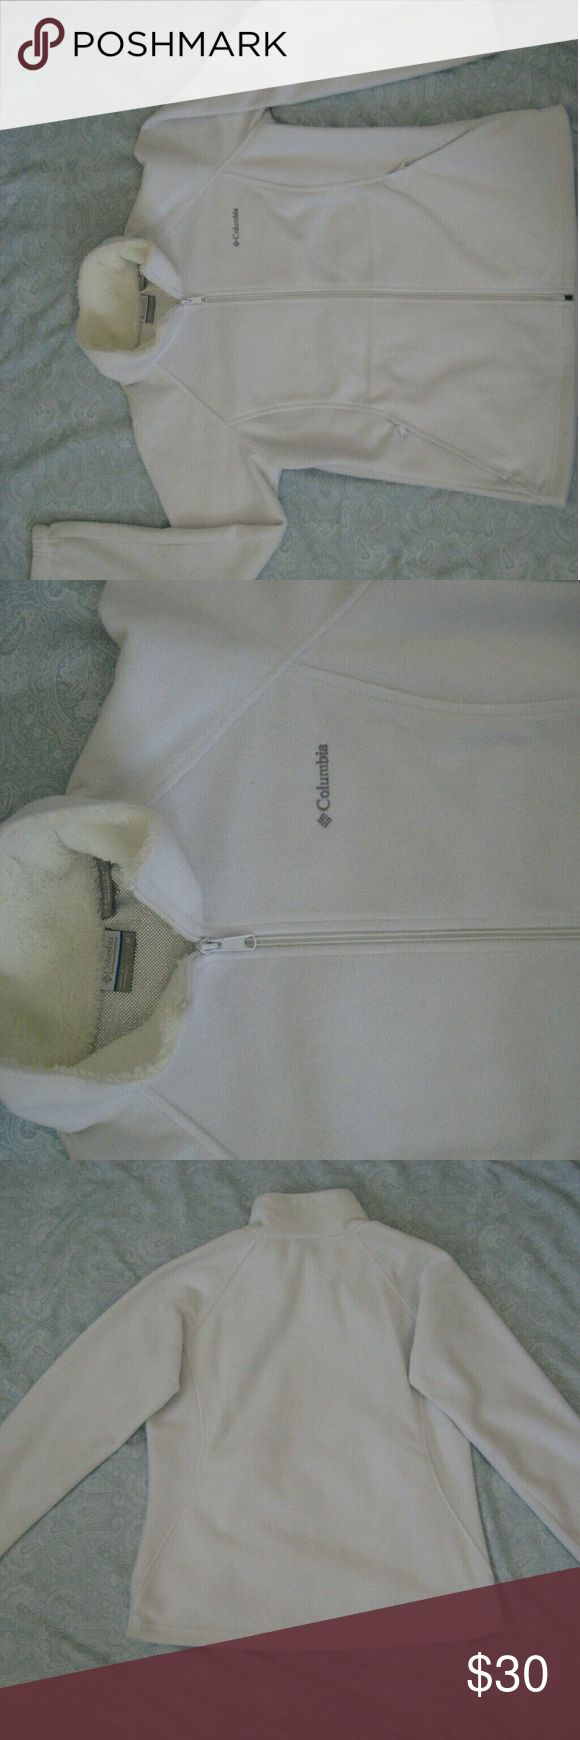 Columbia Omni-heat Thermal Comfort zip up jacket White Columbia thermal jacket. Lining is silver. Collar is a faux type material. There is a small, almost unnoticeable mark on the front left pocket (see last picture). Columbia Jackets & Coats